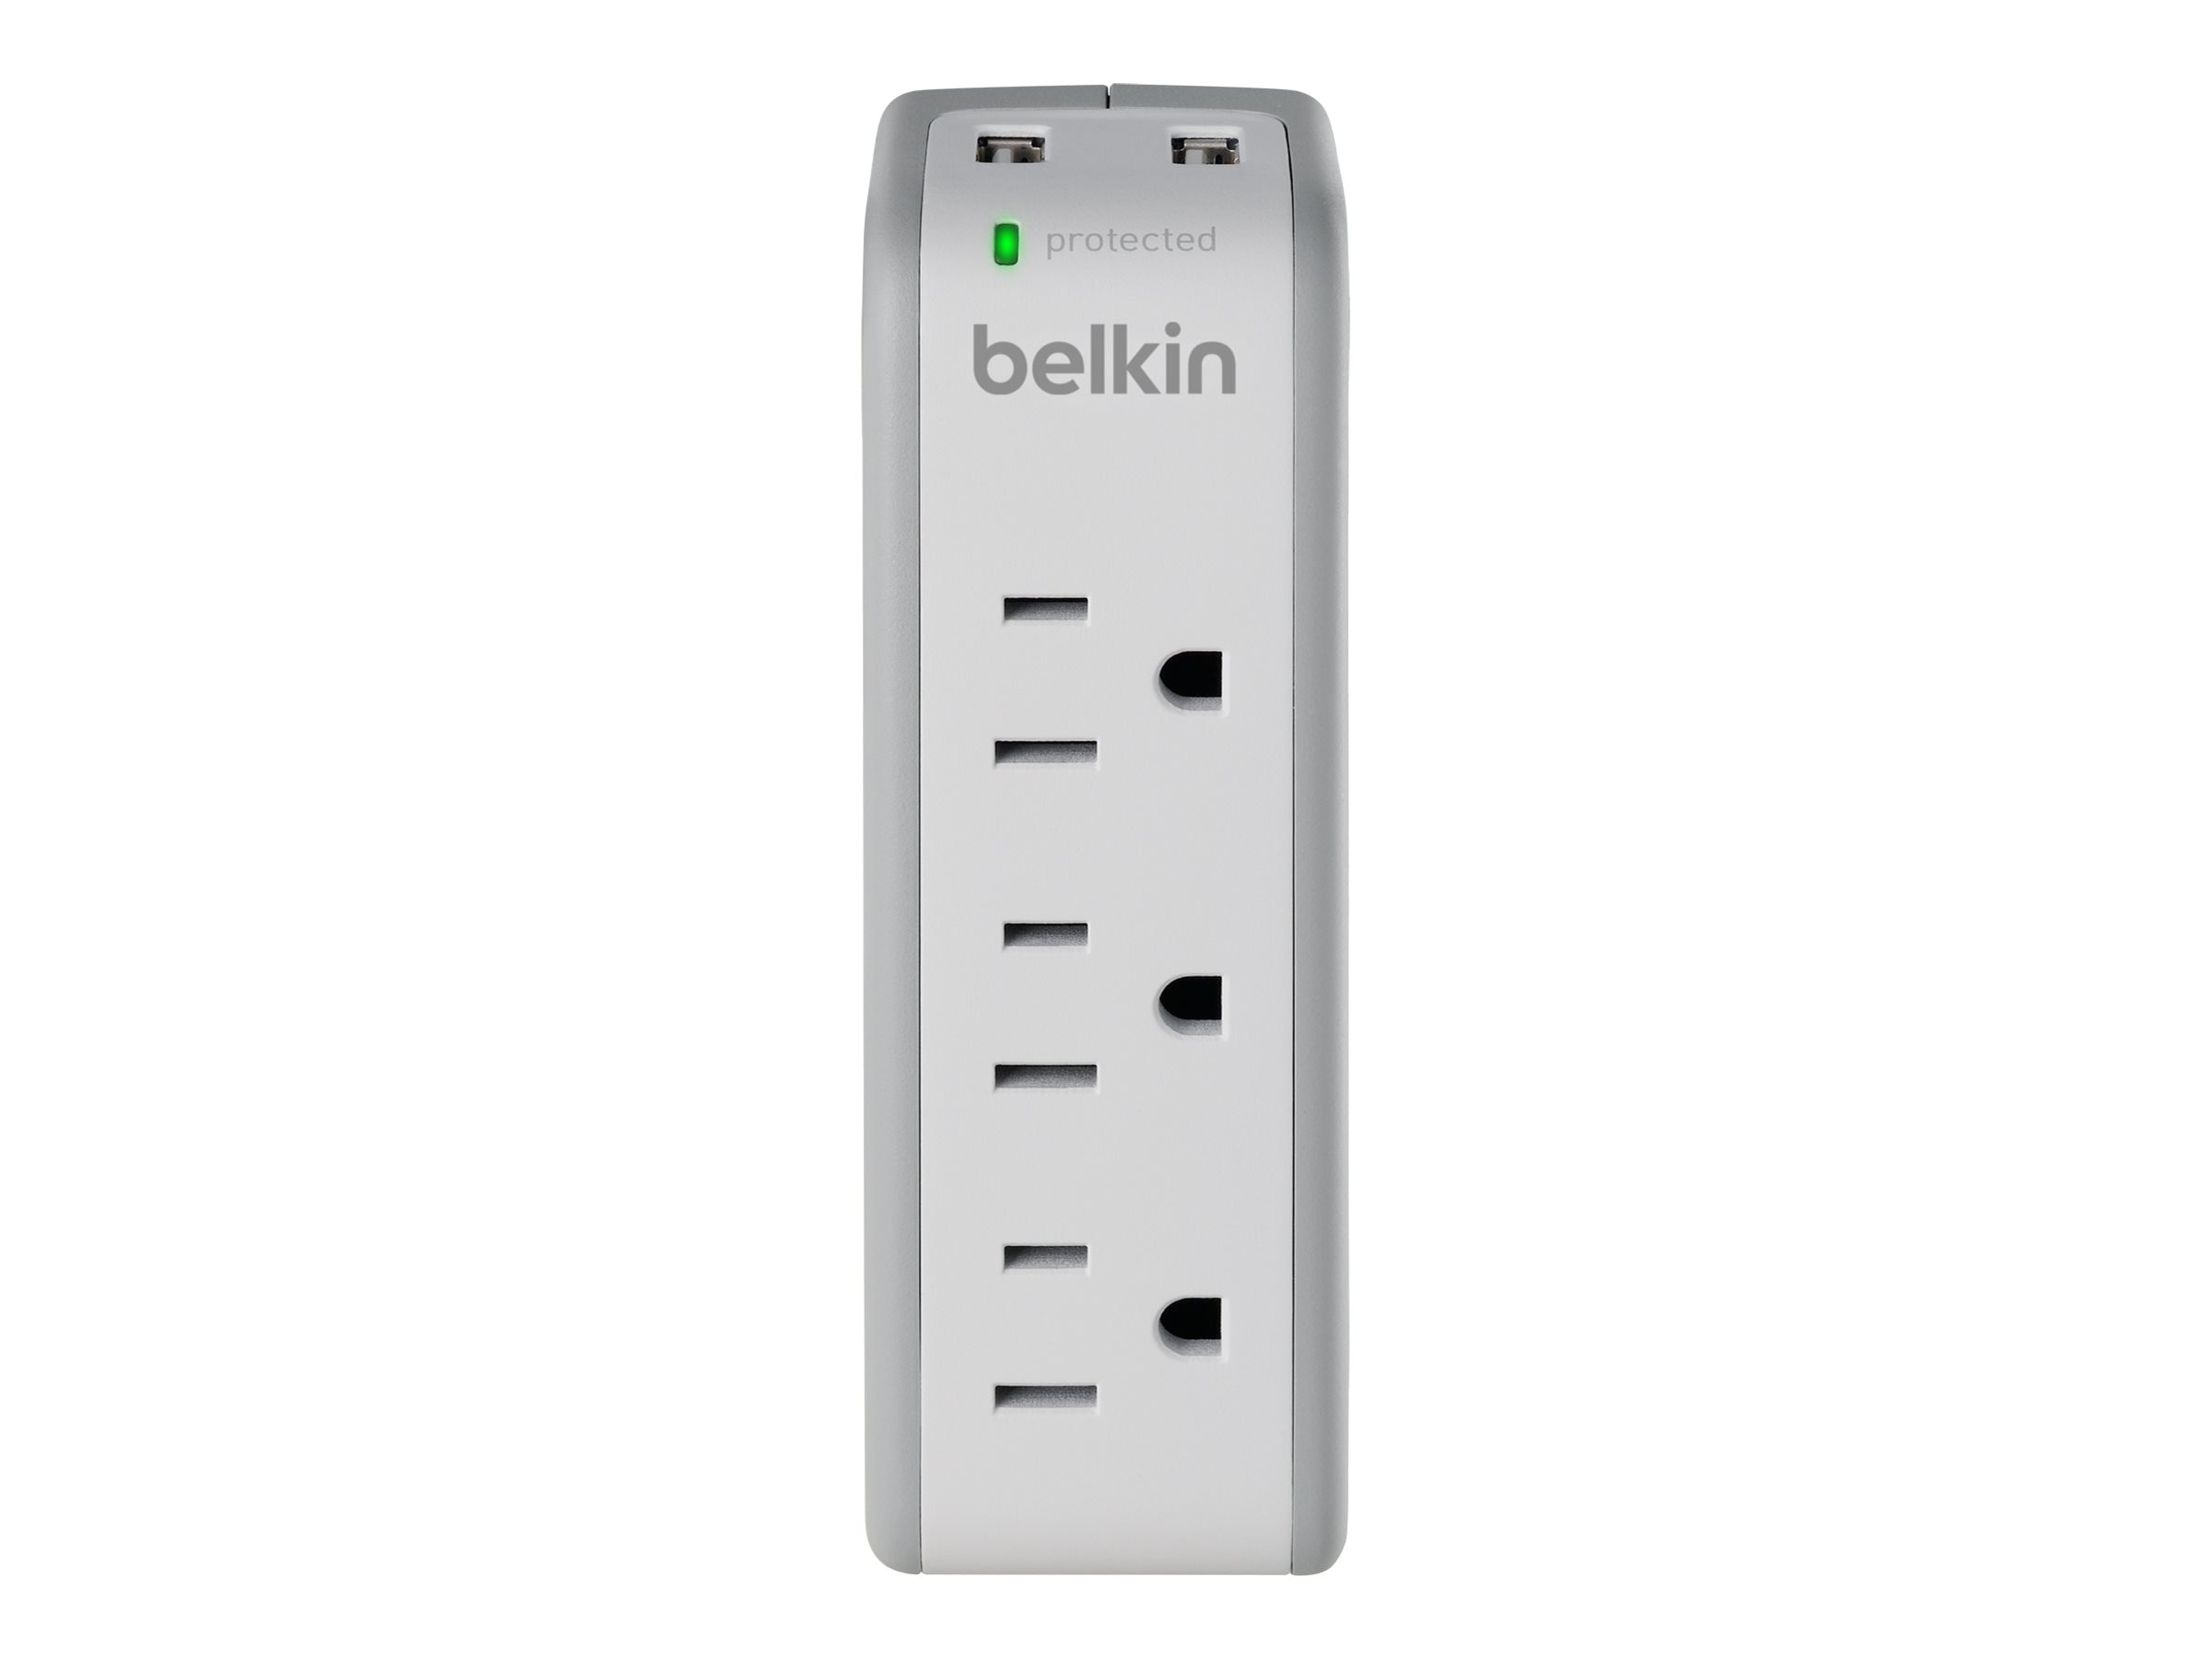 Belkin Mini Surge Protector with USB Charger, (2) USB Outlets, 918 Joules - $1 Instant Savings, BZ103050-TVL, 11662974, Power Converters